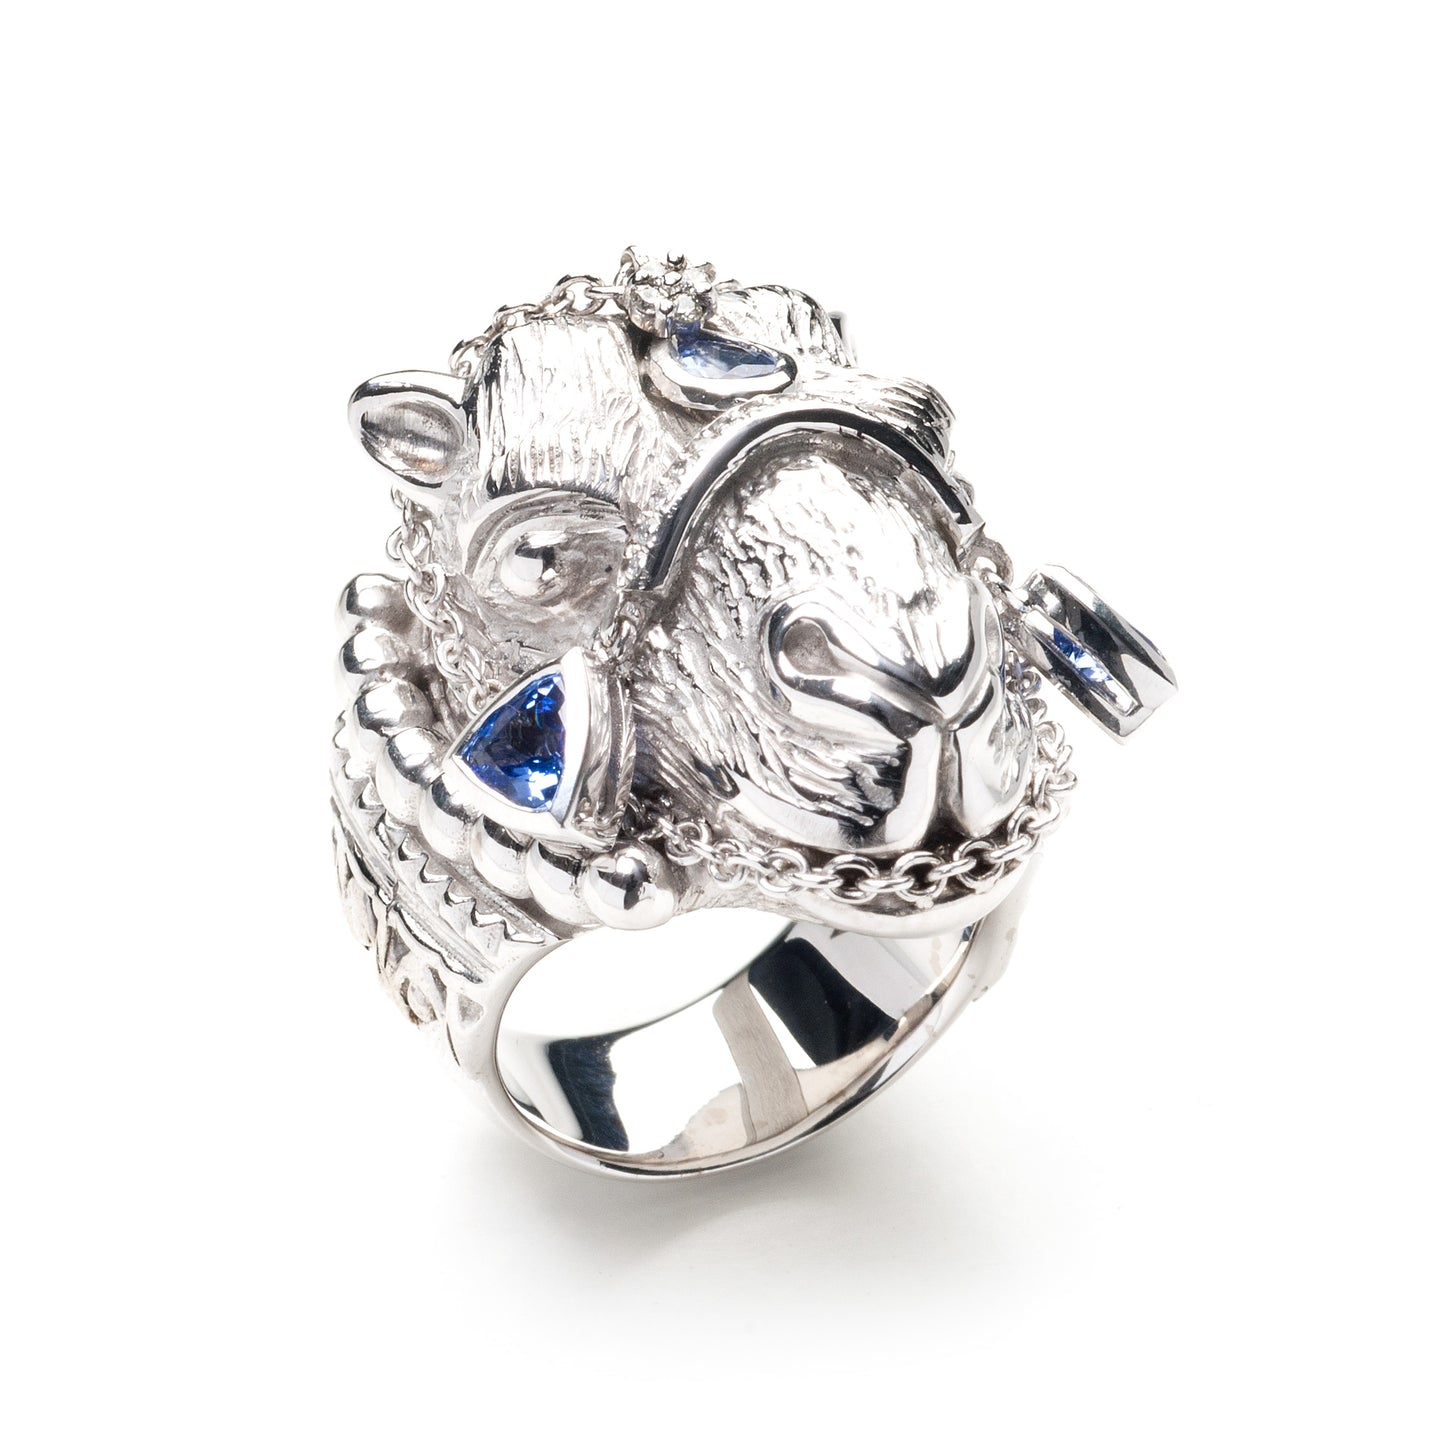 Parizade Camel Ring - 18k White Gold